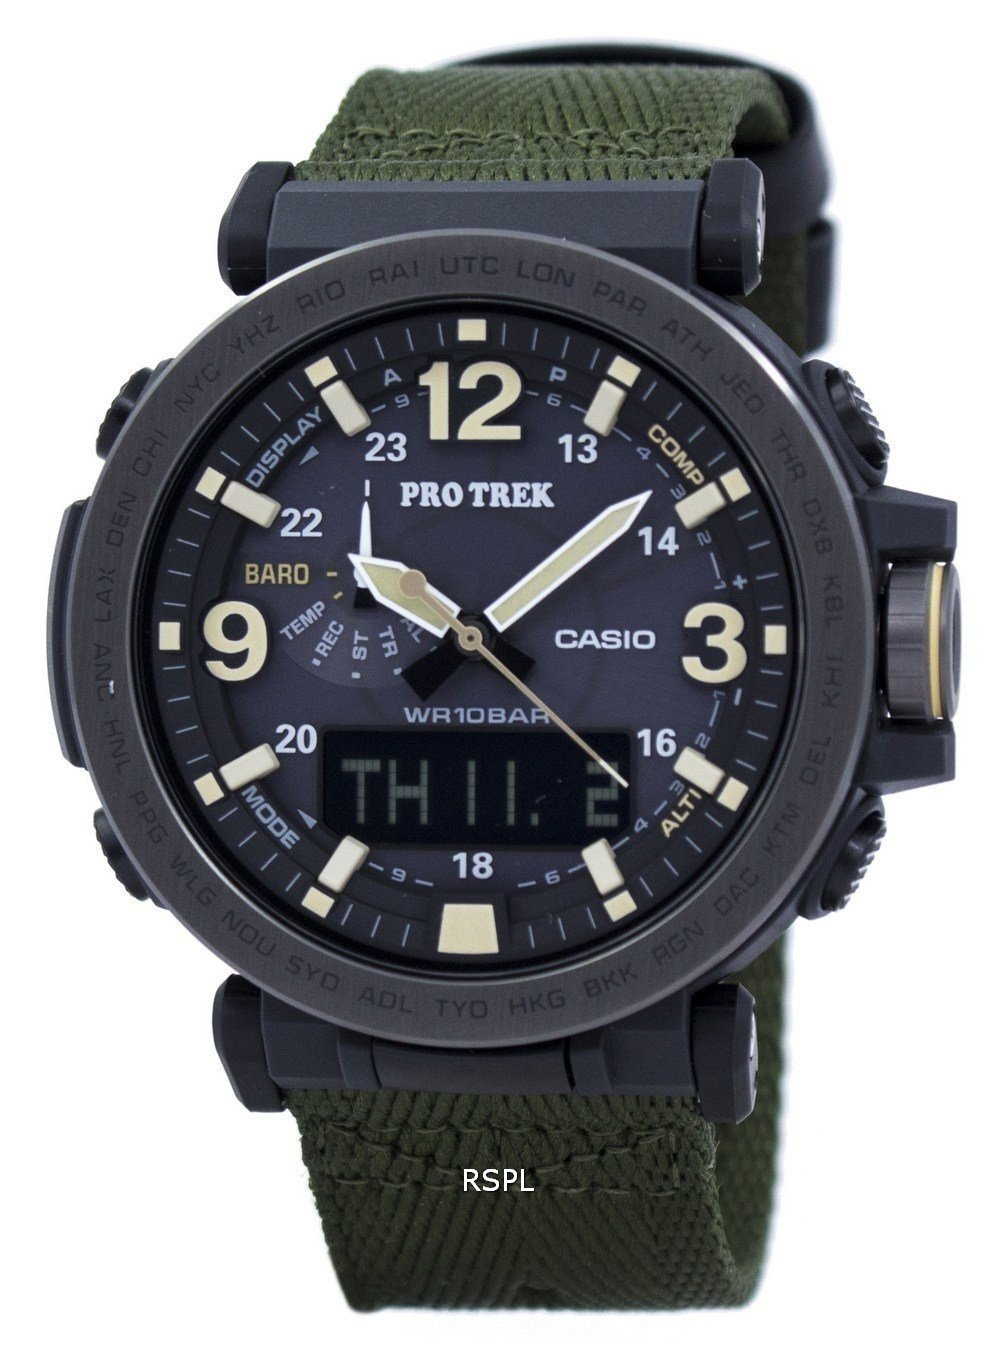 Casio Protrek Tough Solar Analog Digital PRG-600YB-3 Men's Watch